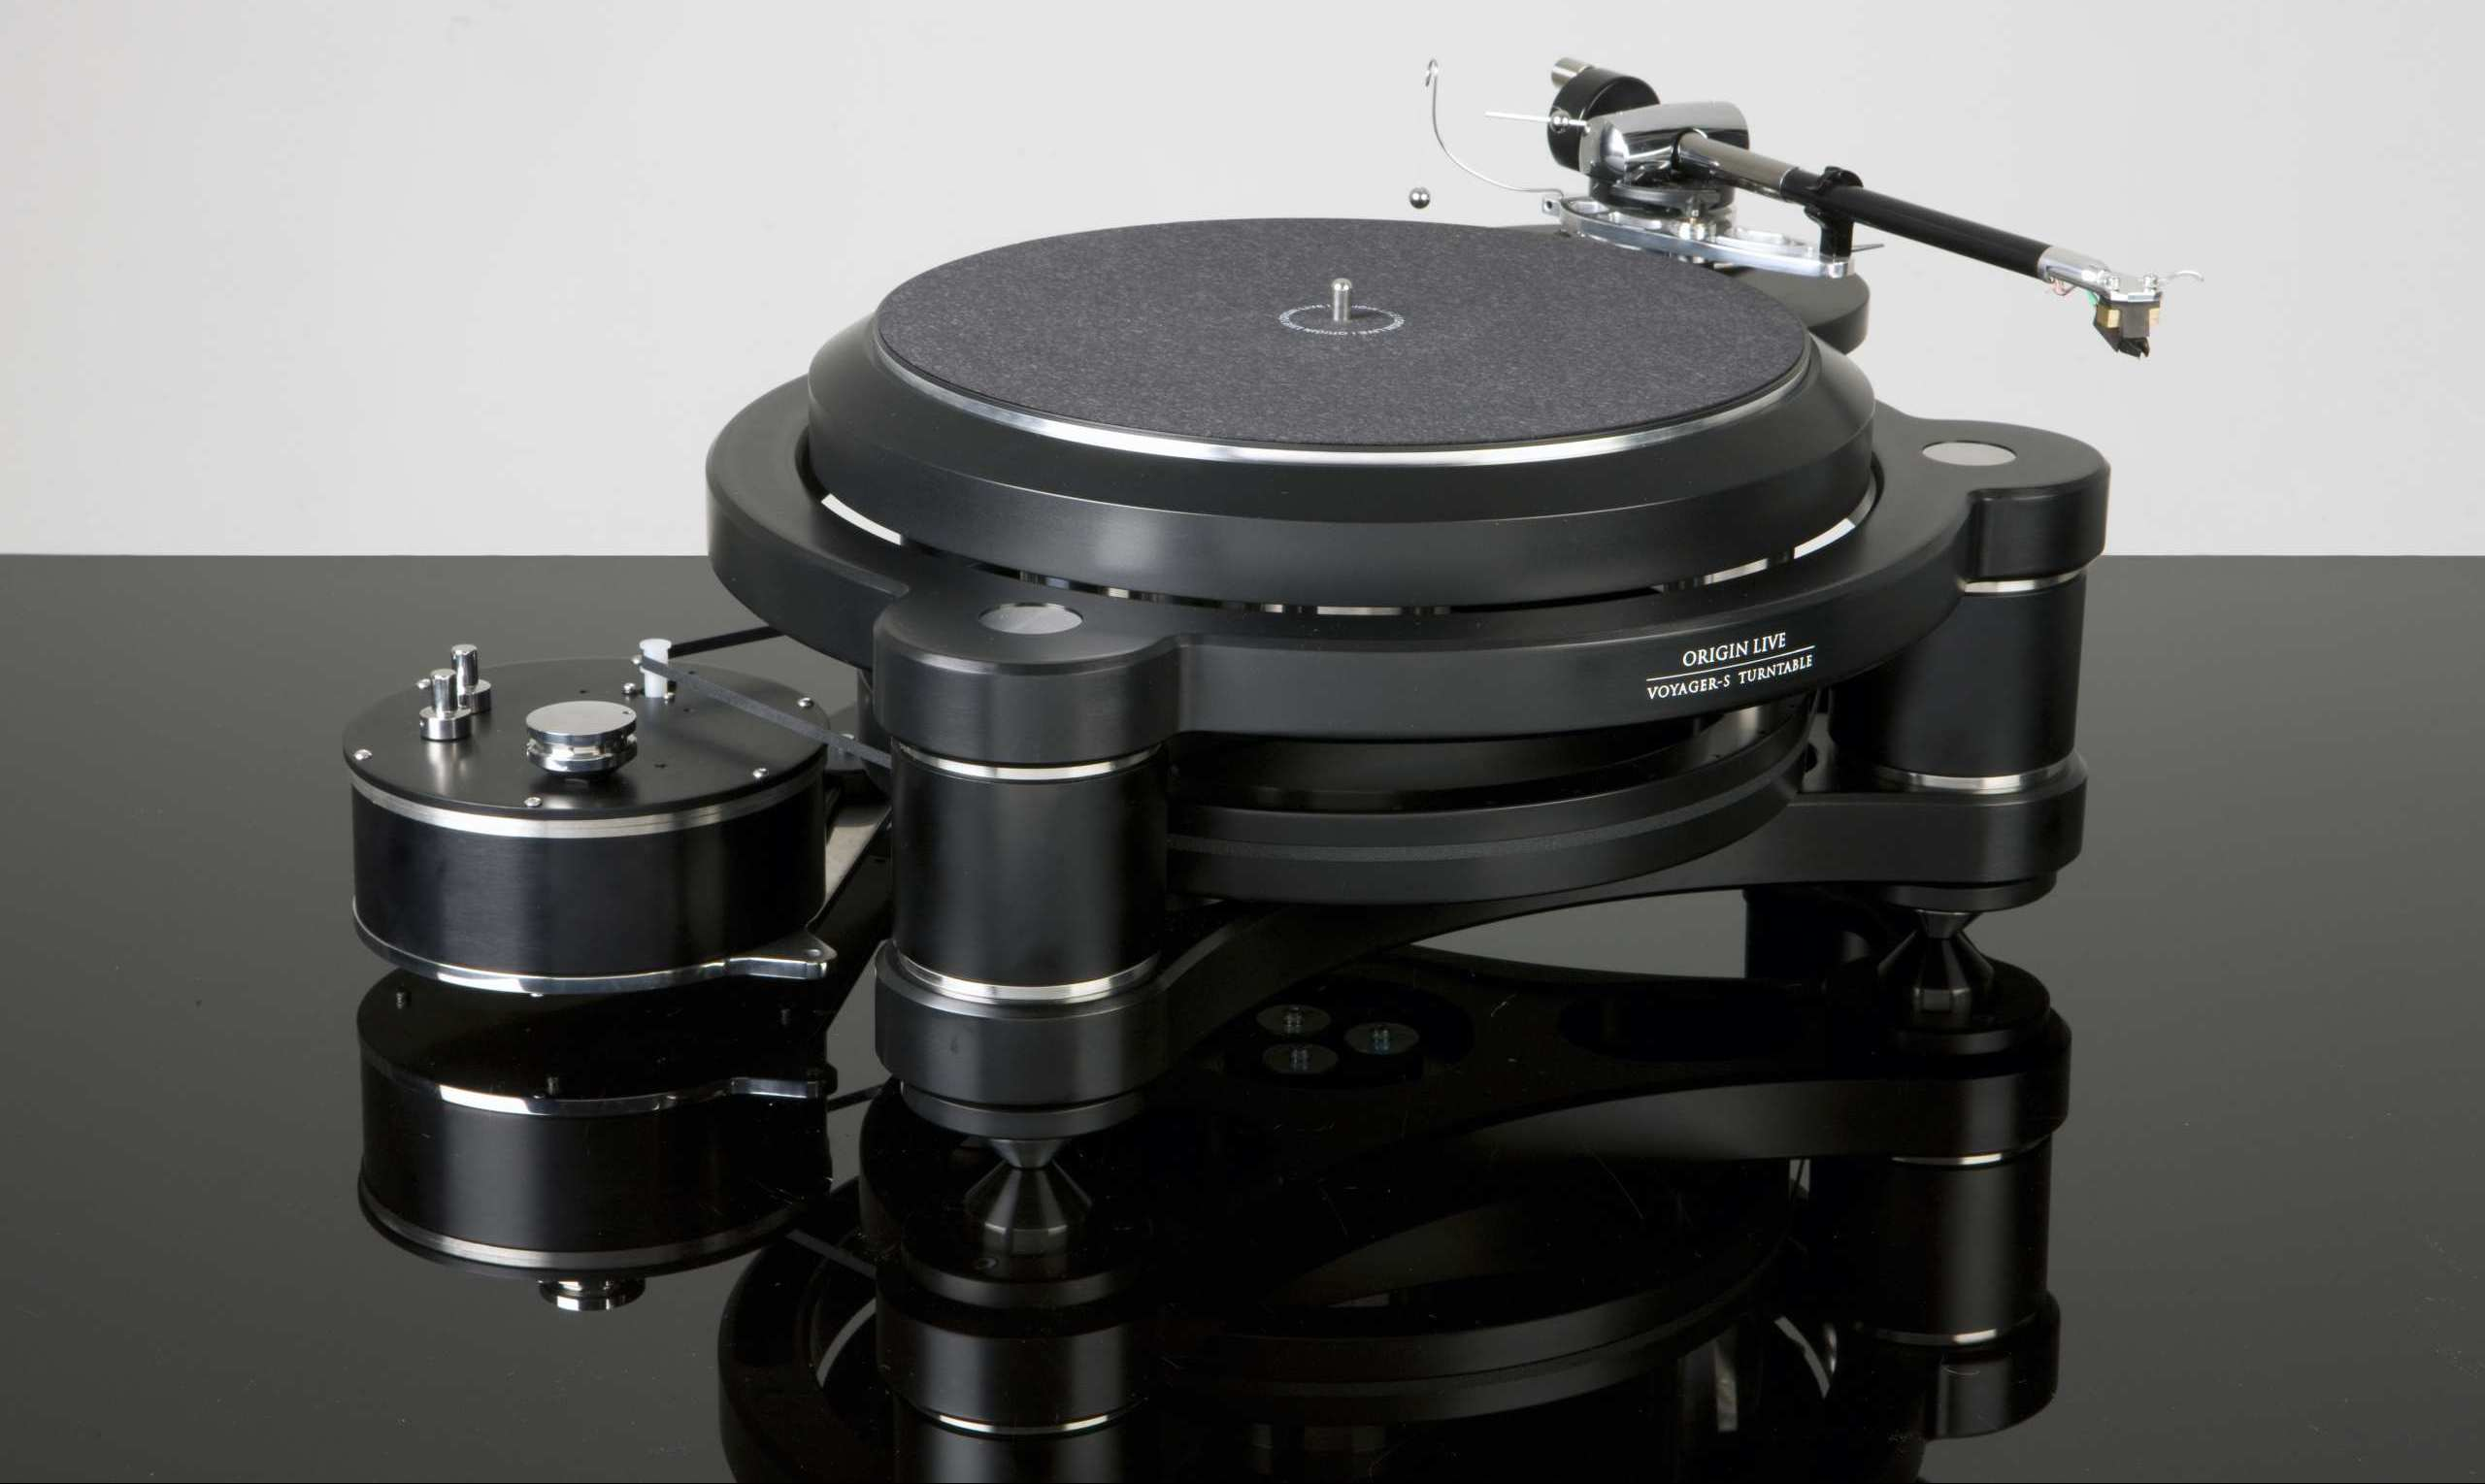 Origin Live voyager Turntable leading to Turntable product range